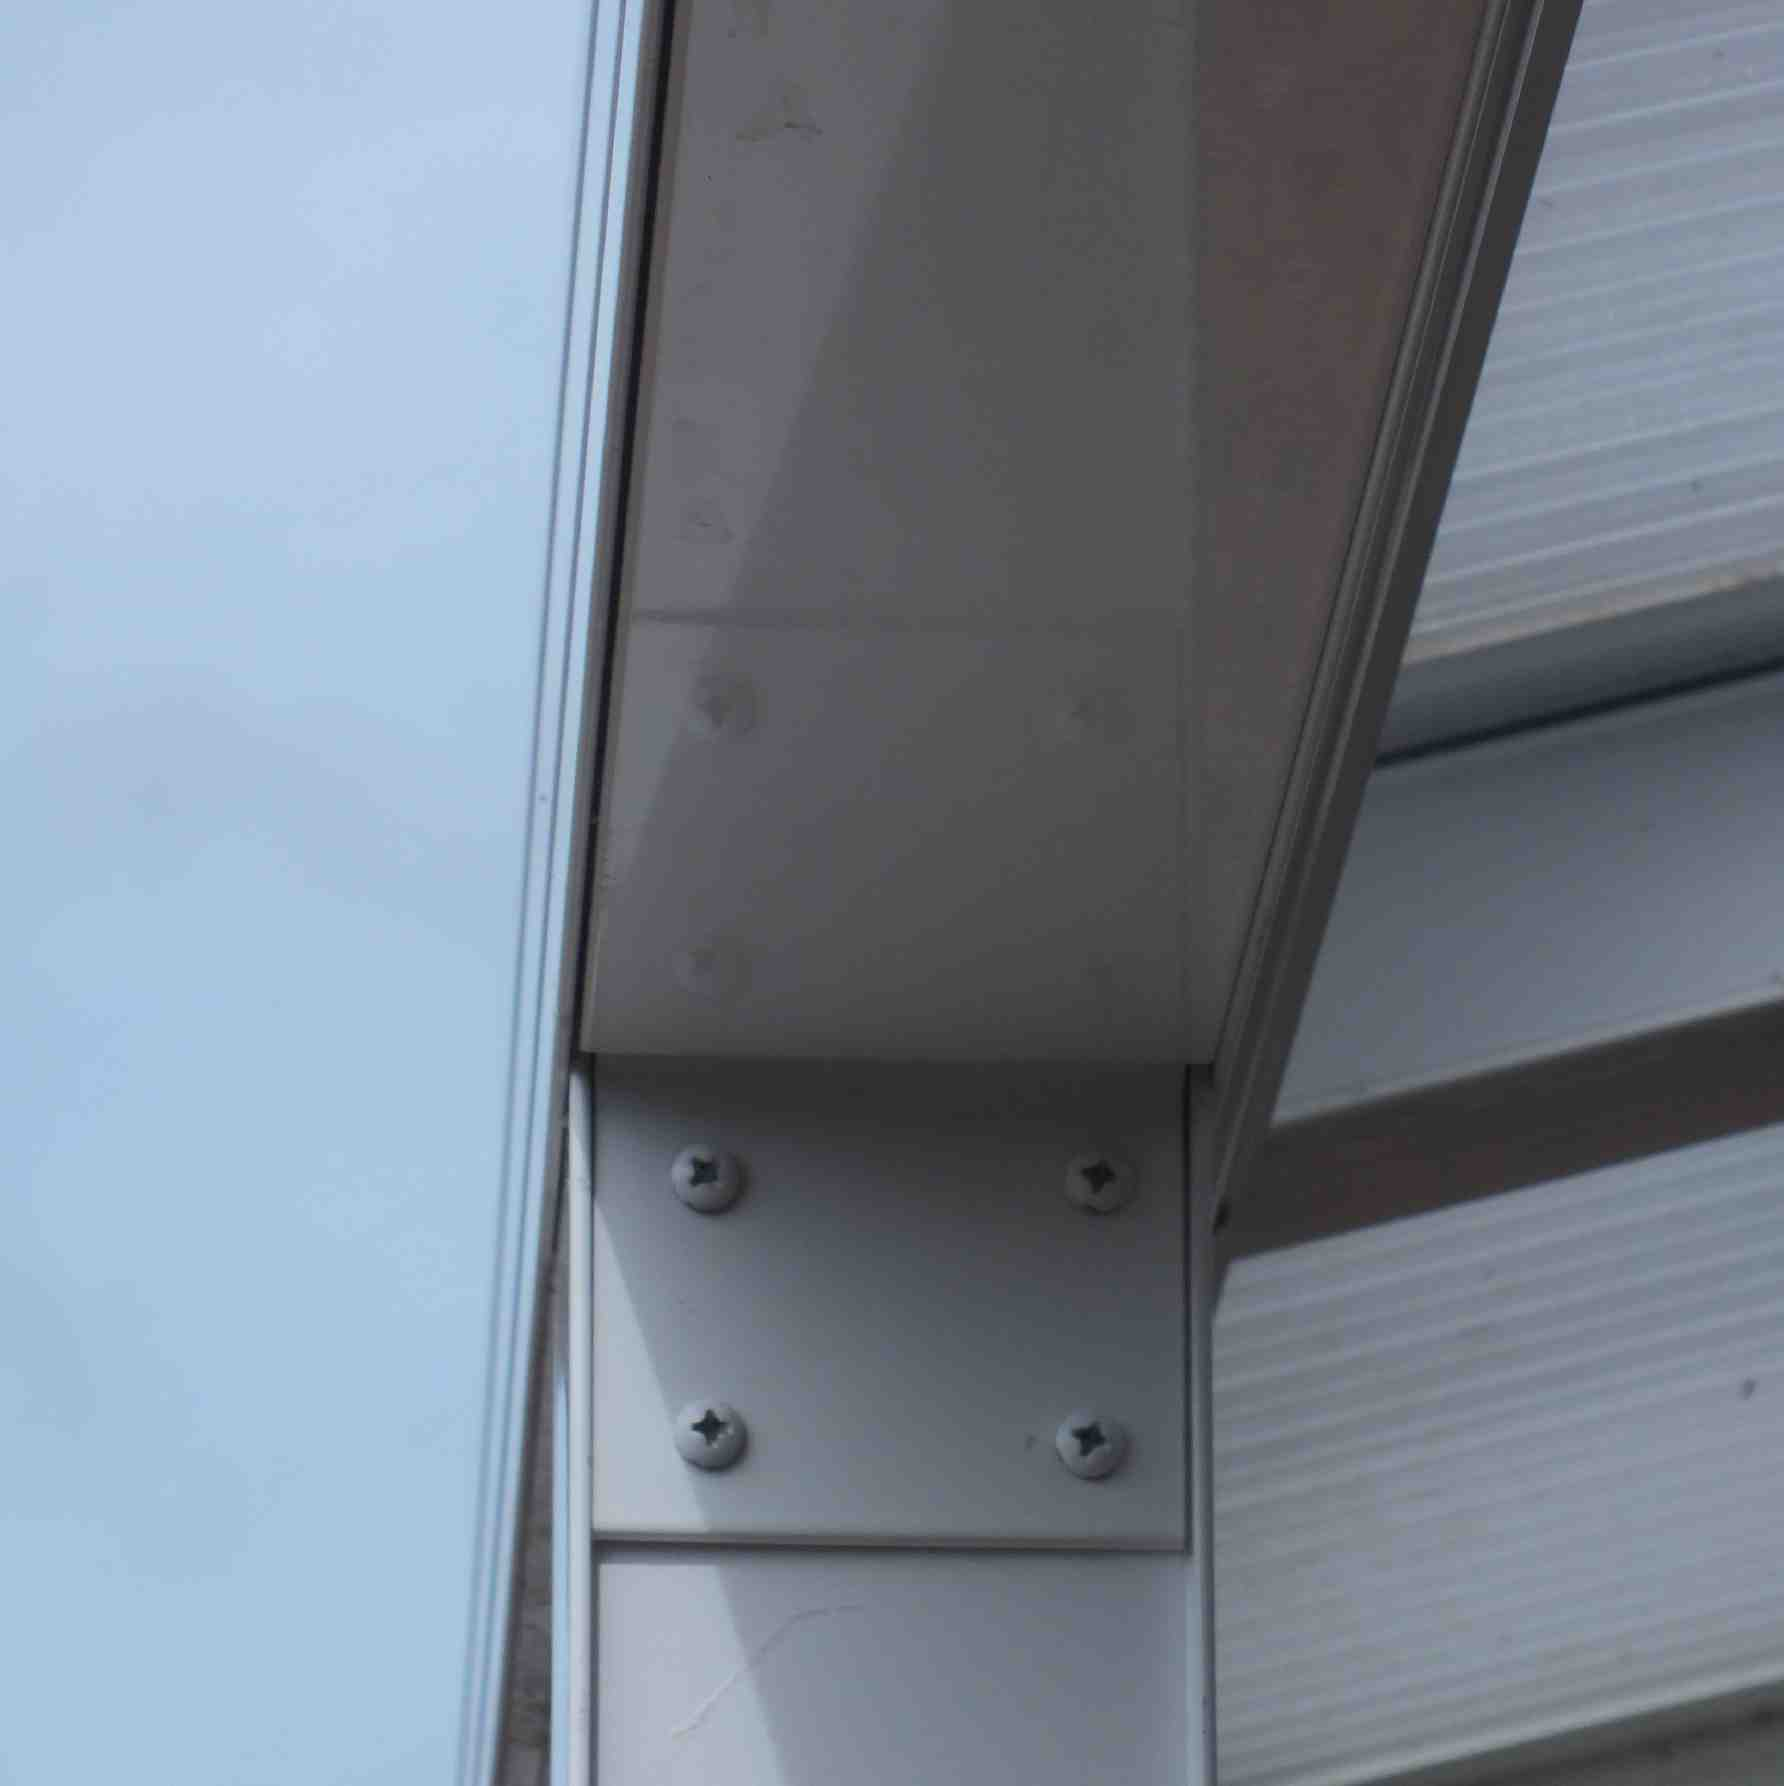 Affordable Omega Verandah with 16mm Polycarbonate Glazing - 3.5m (W) x 3.5m (P), (3) Supporting Posts